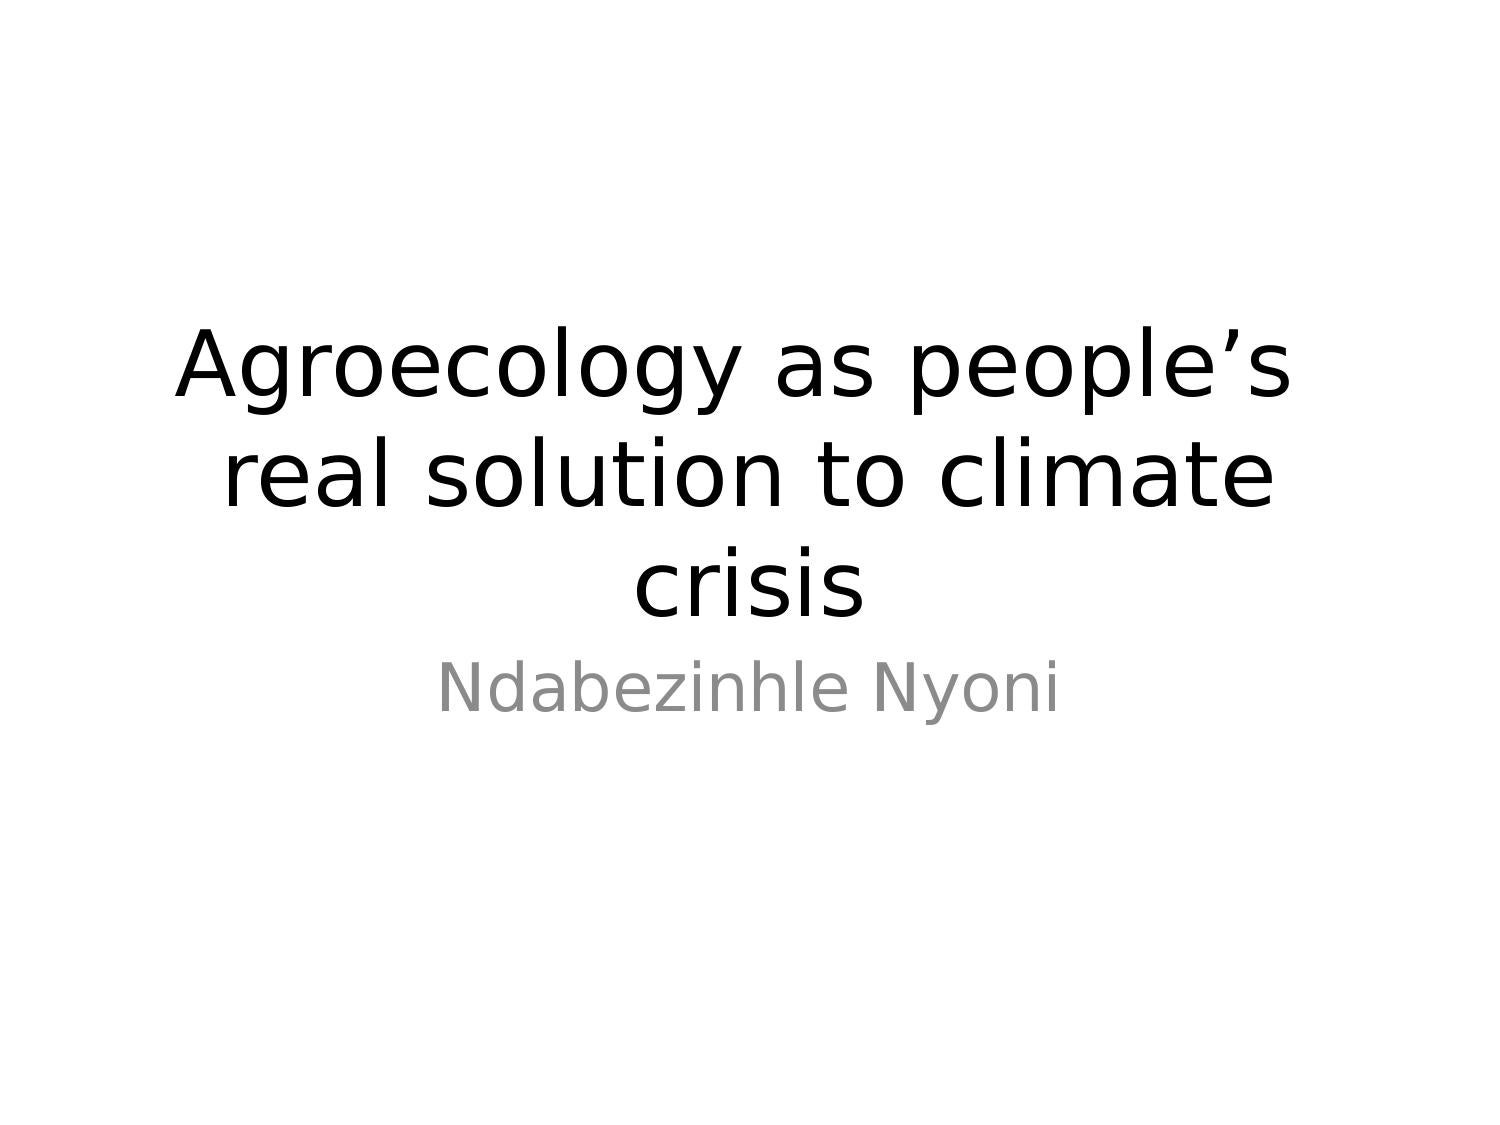 Agroecology As People's Real Solution To Climate Crisis by